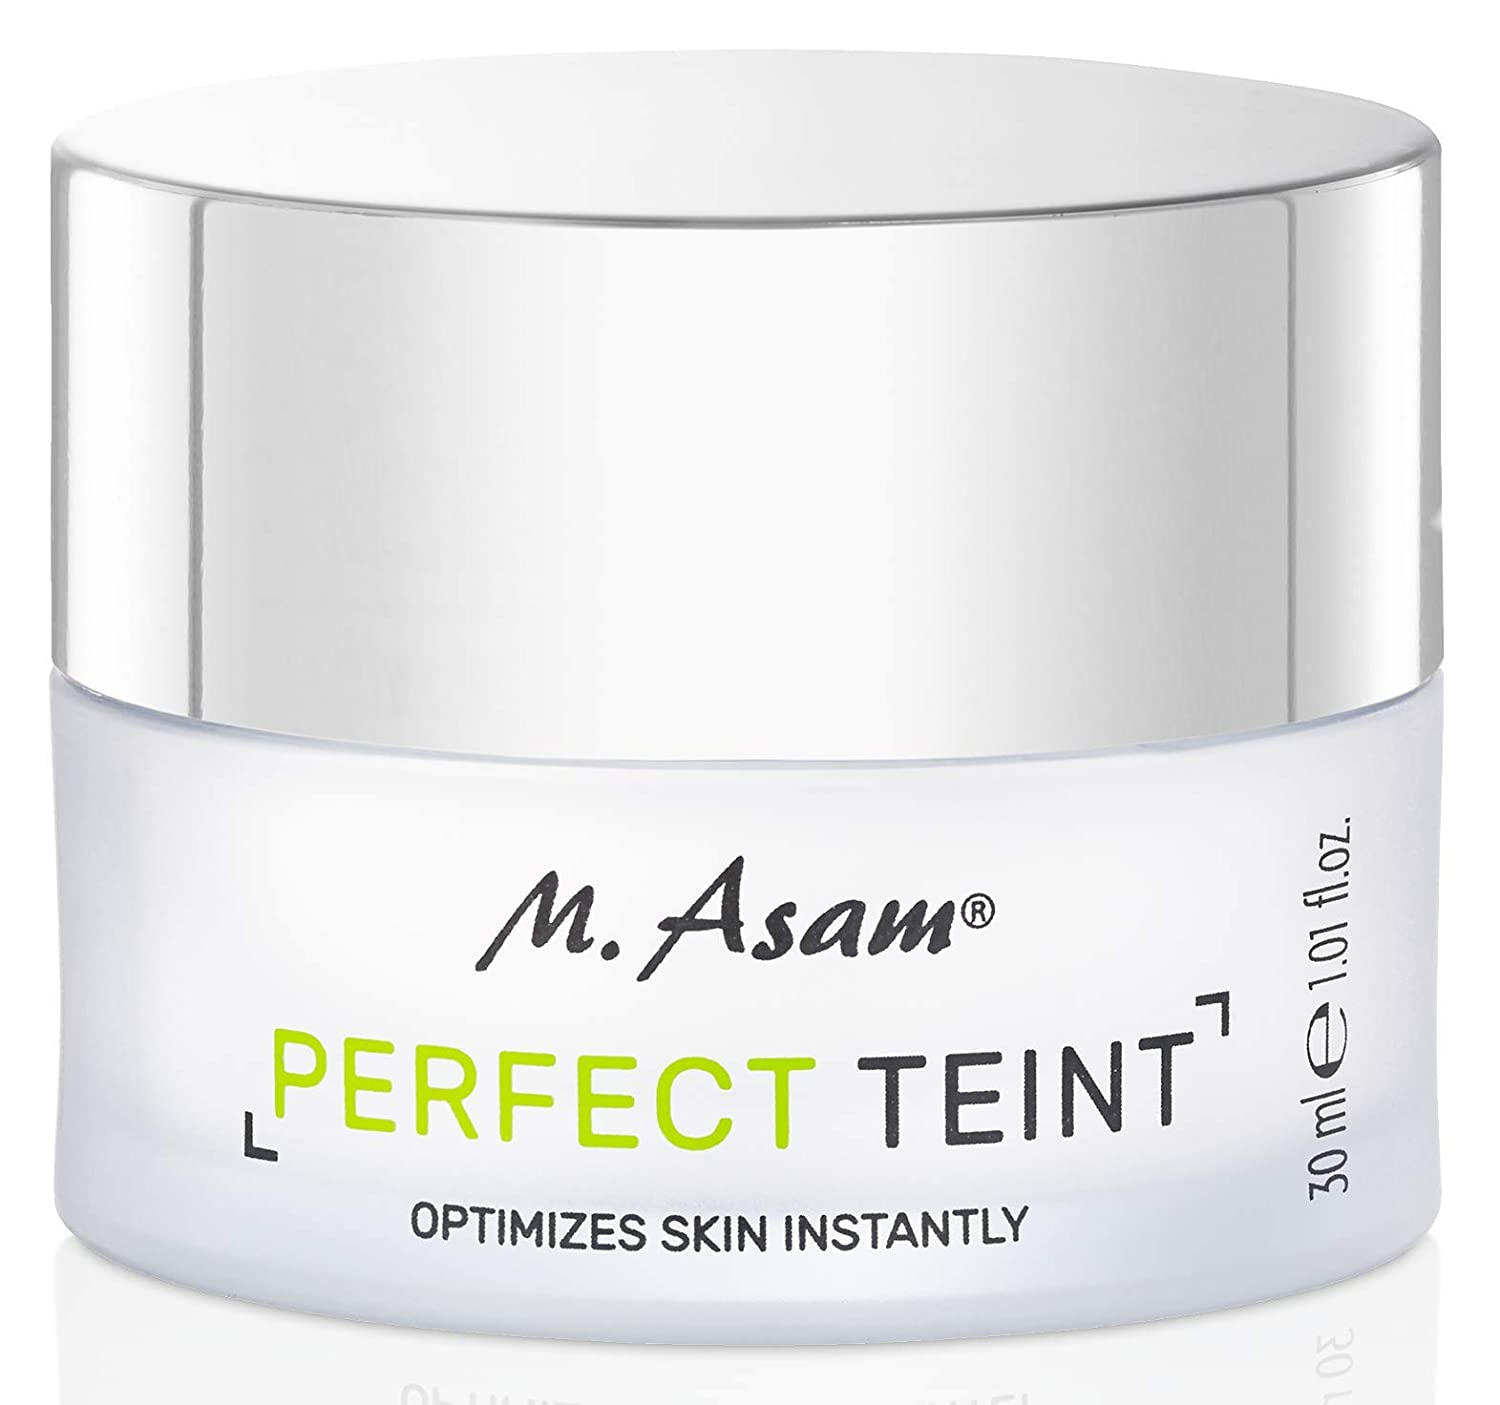 M. Asam, Perfect Teint, Optimizes Skin Instantly - 1.69 Ounce (30 ML)